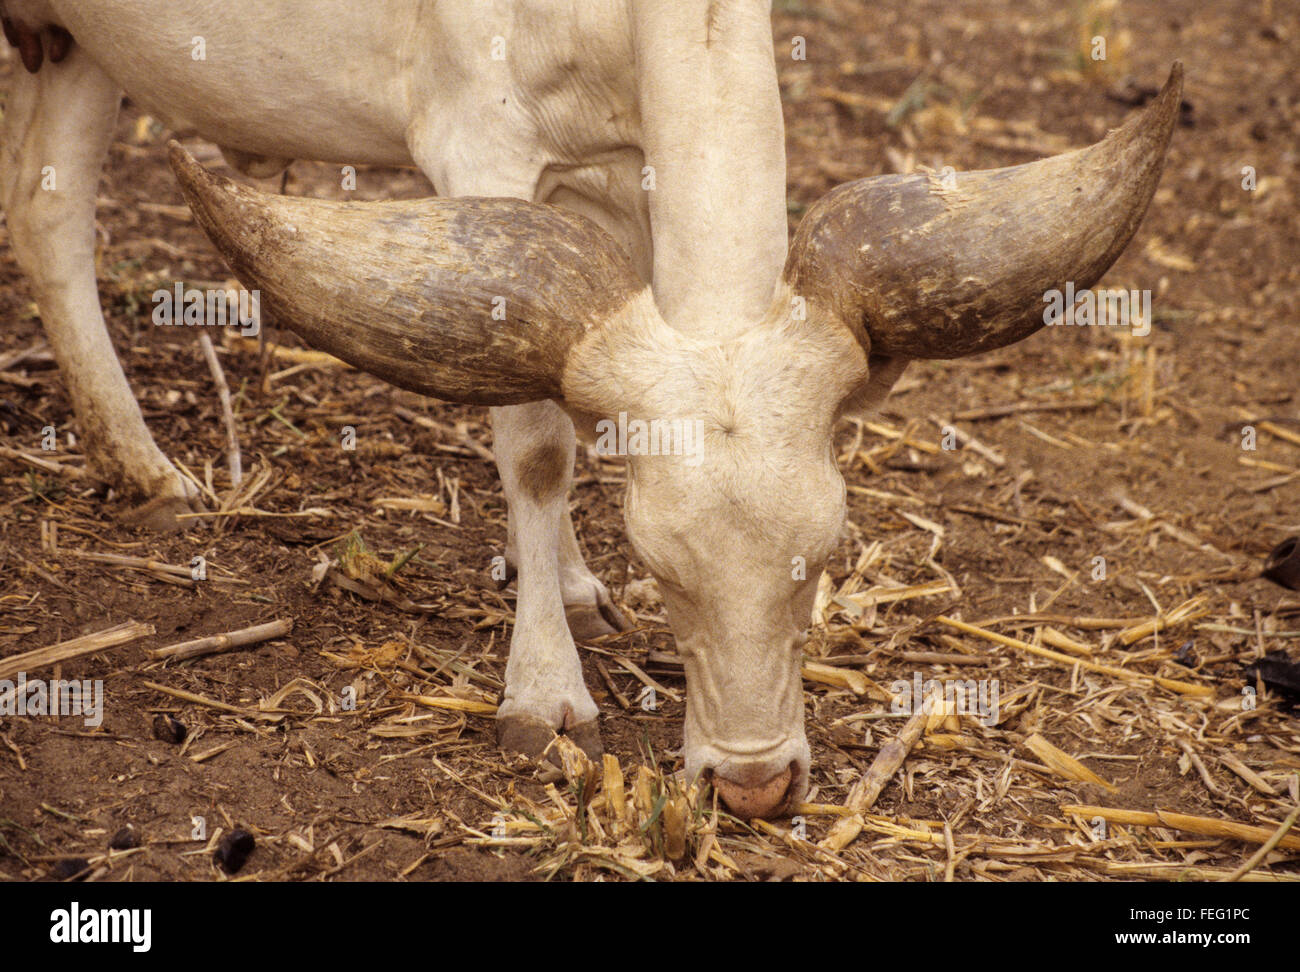 Niger, Niamey.  Lake Chad Cow, Kuri Breed, descended from Bos Taurus Longifrons. - Stock Image